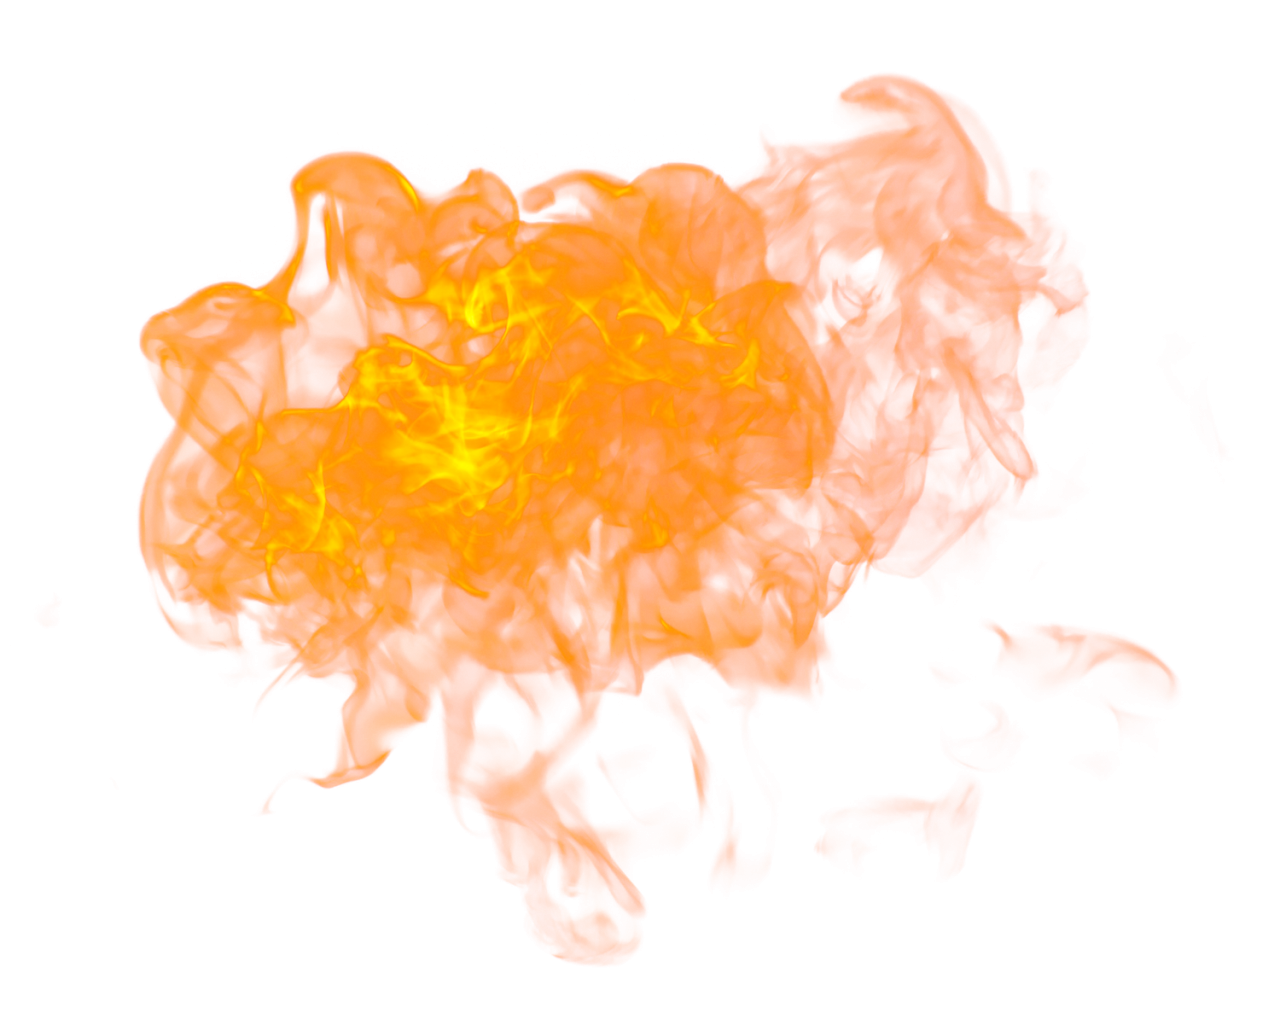 Big Fire Flaming PNG Image